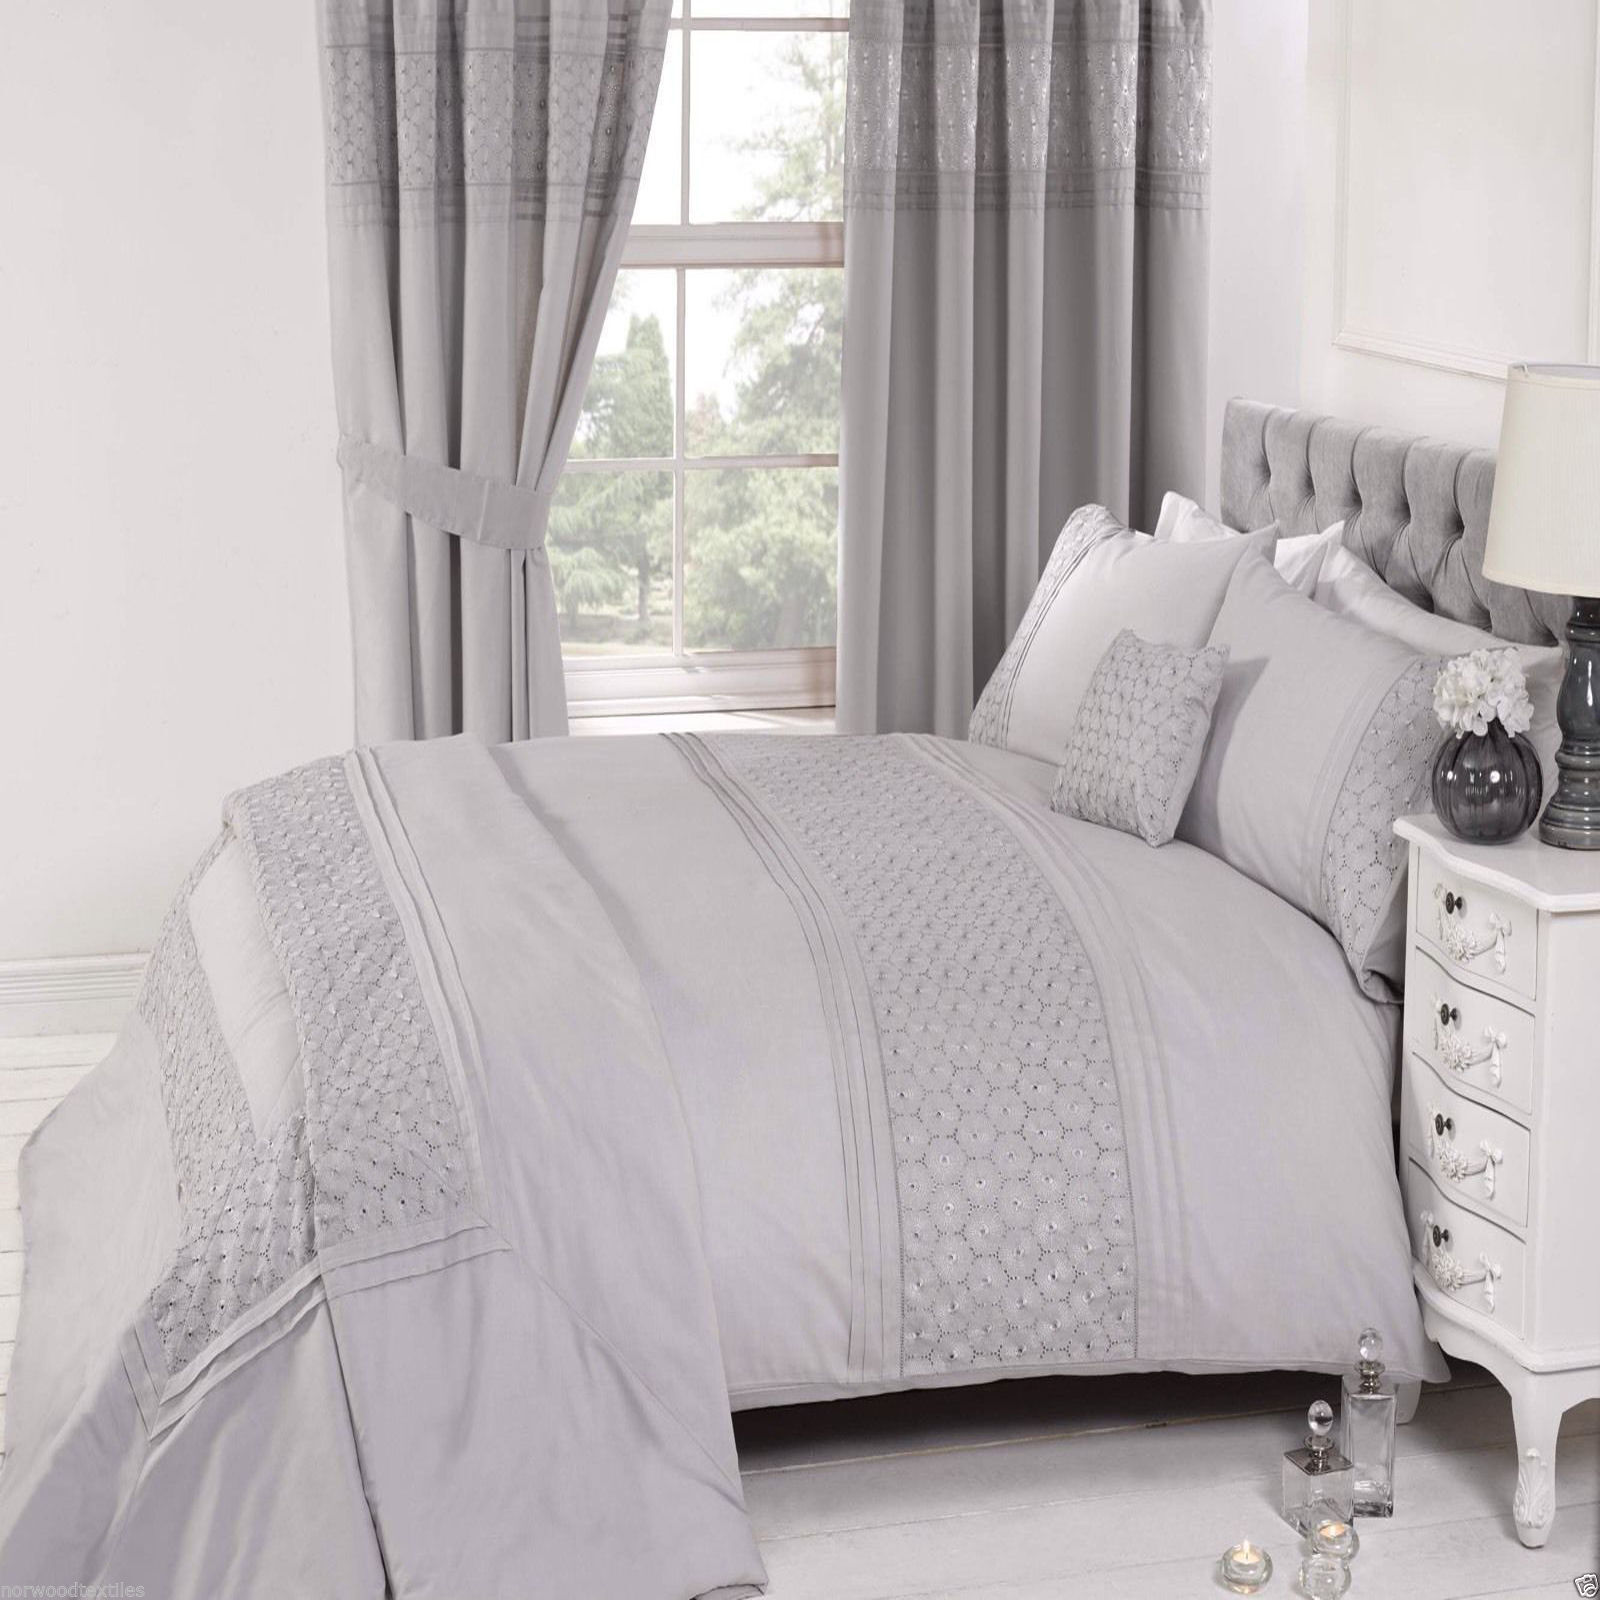 Everdean Embroidered Quilt Cover Luxury Duvet Quilt Cover Set Pink,White,Cream